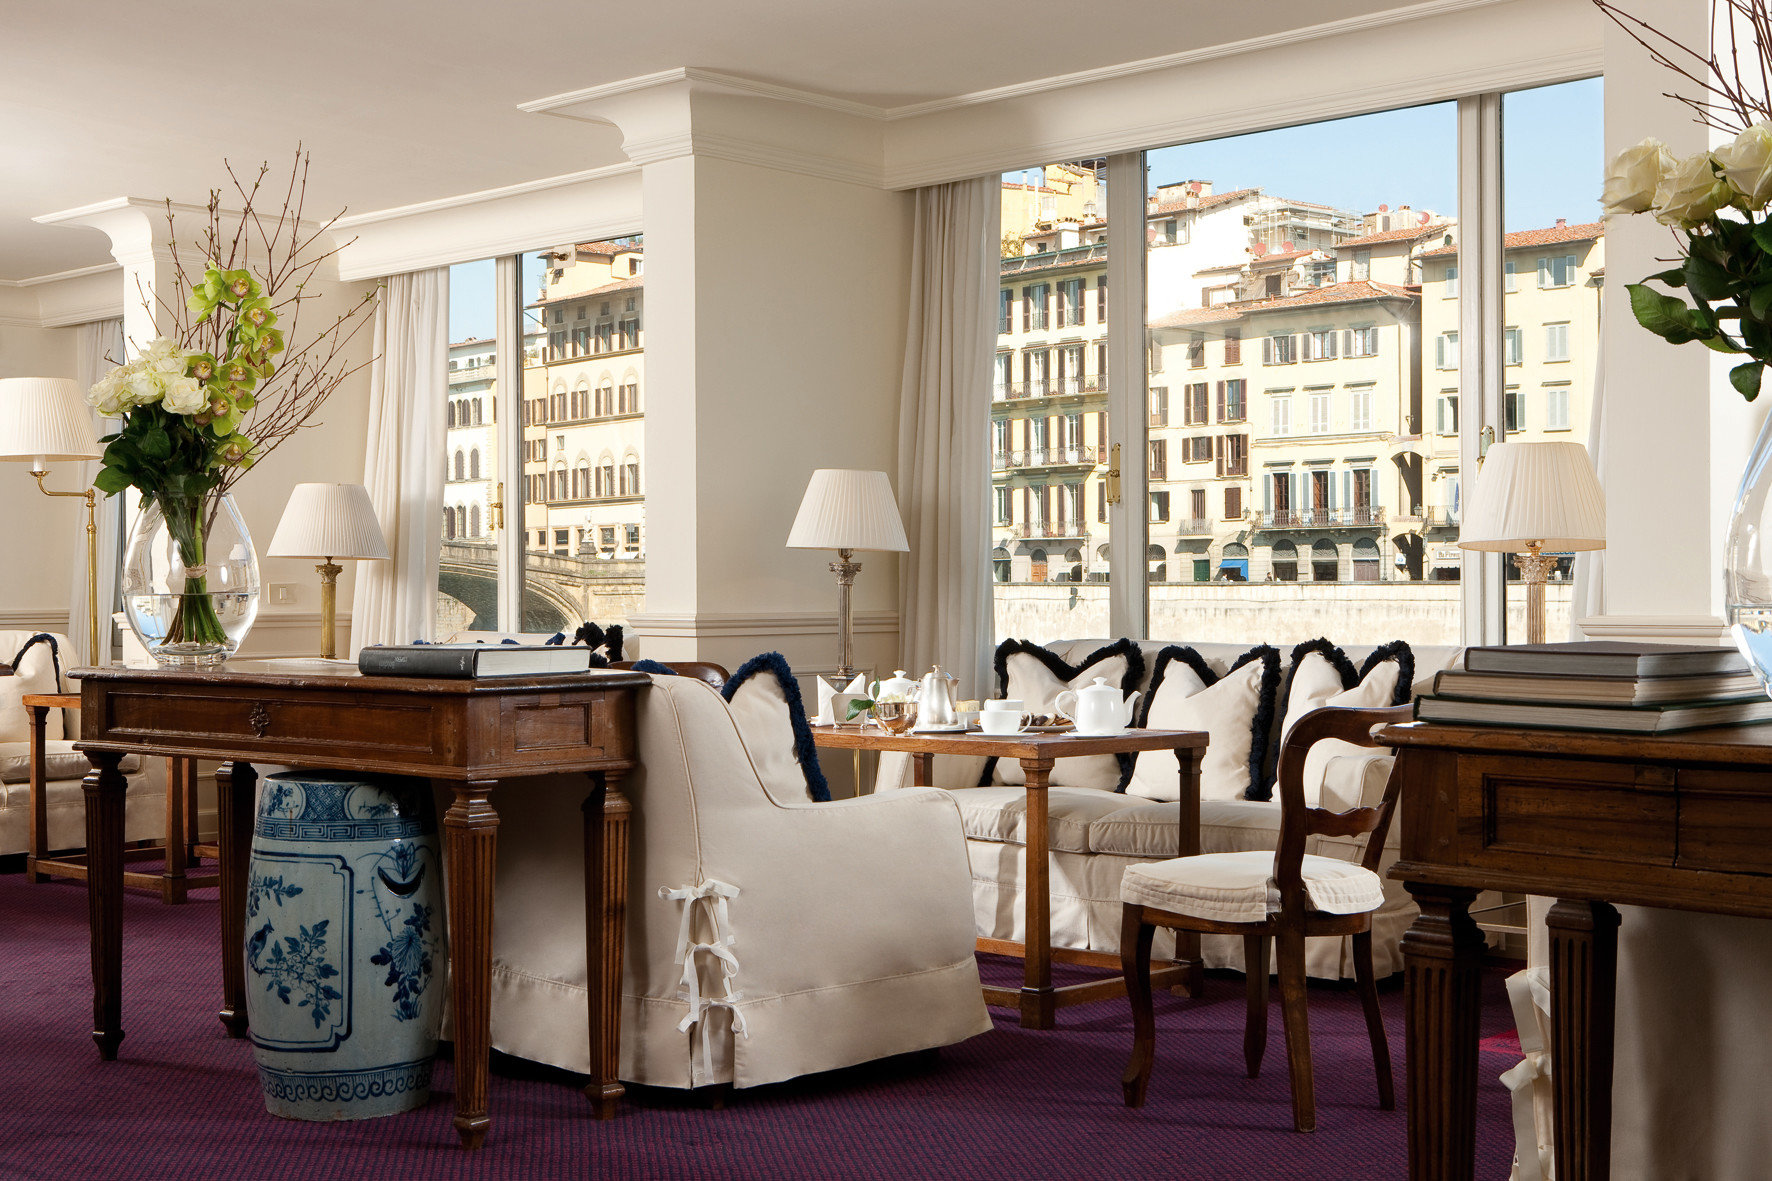 Florence Hotels Italy floor indoor window Living dining room room chair home furniture ceiling interior design living room estate restaurant table window covering decorated area